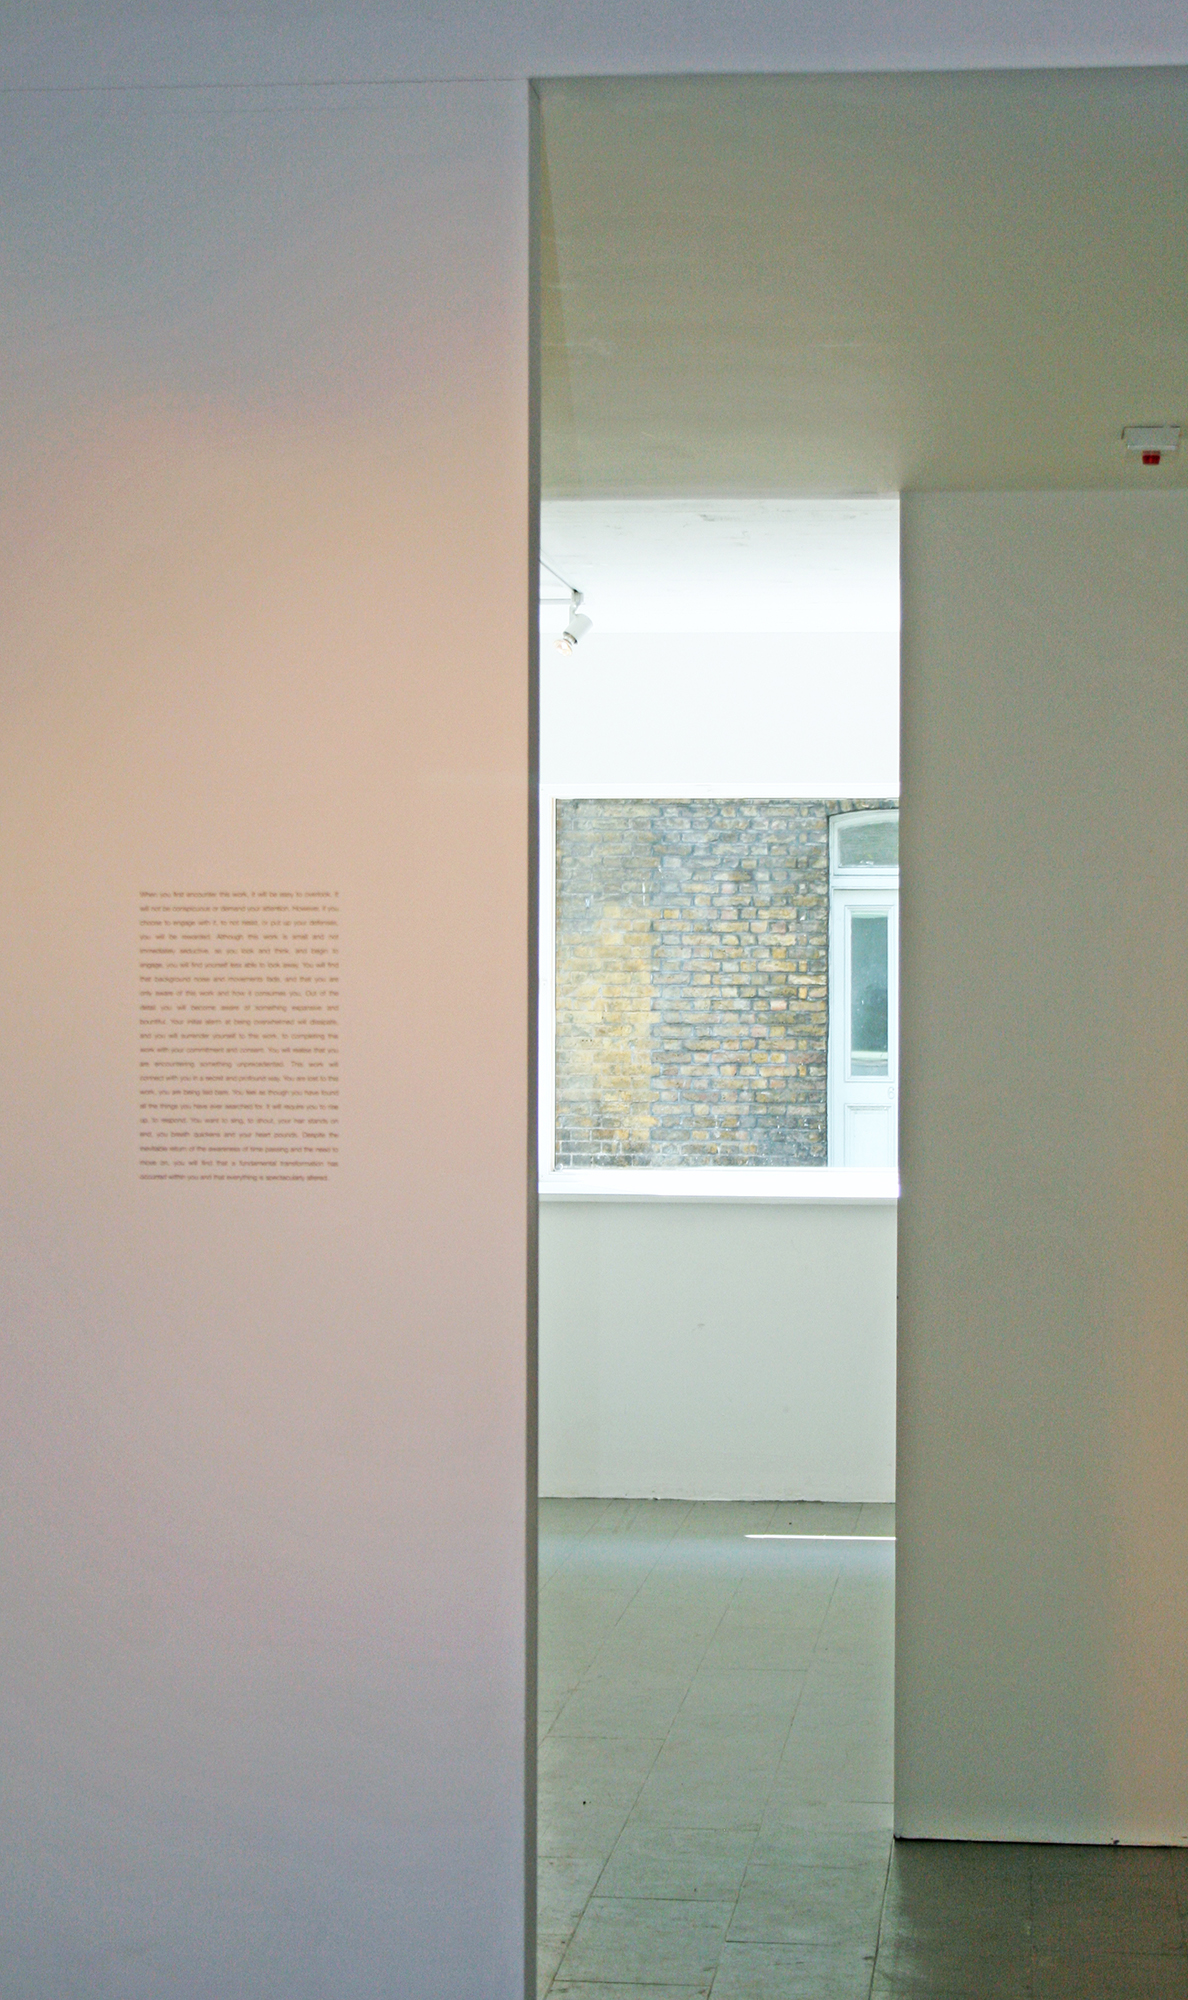 This Work. Wall based text. Kate Pickering.